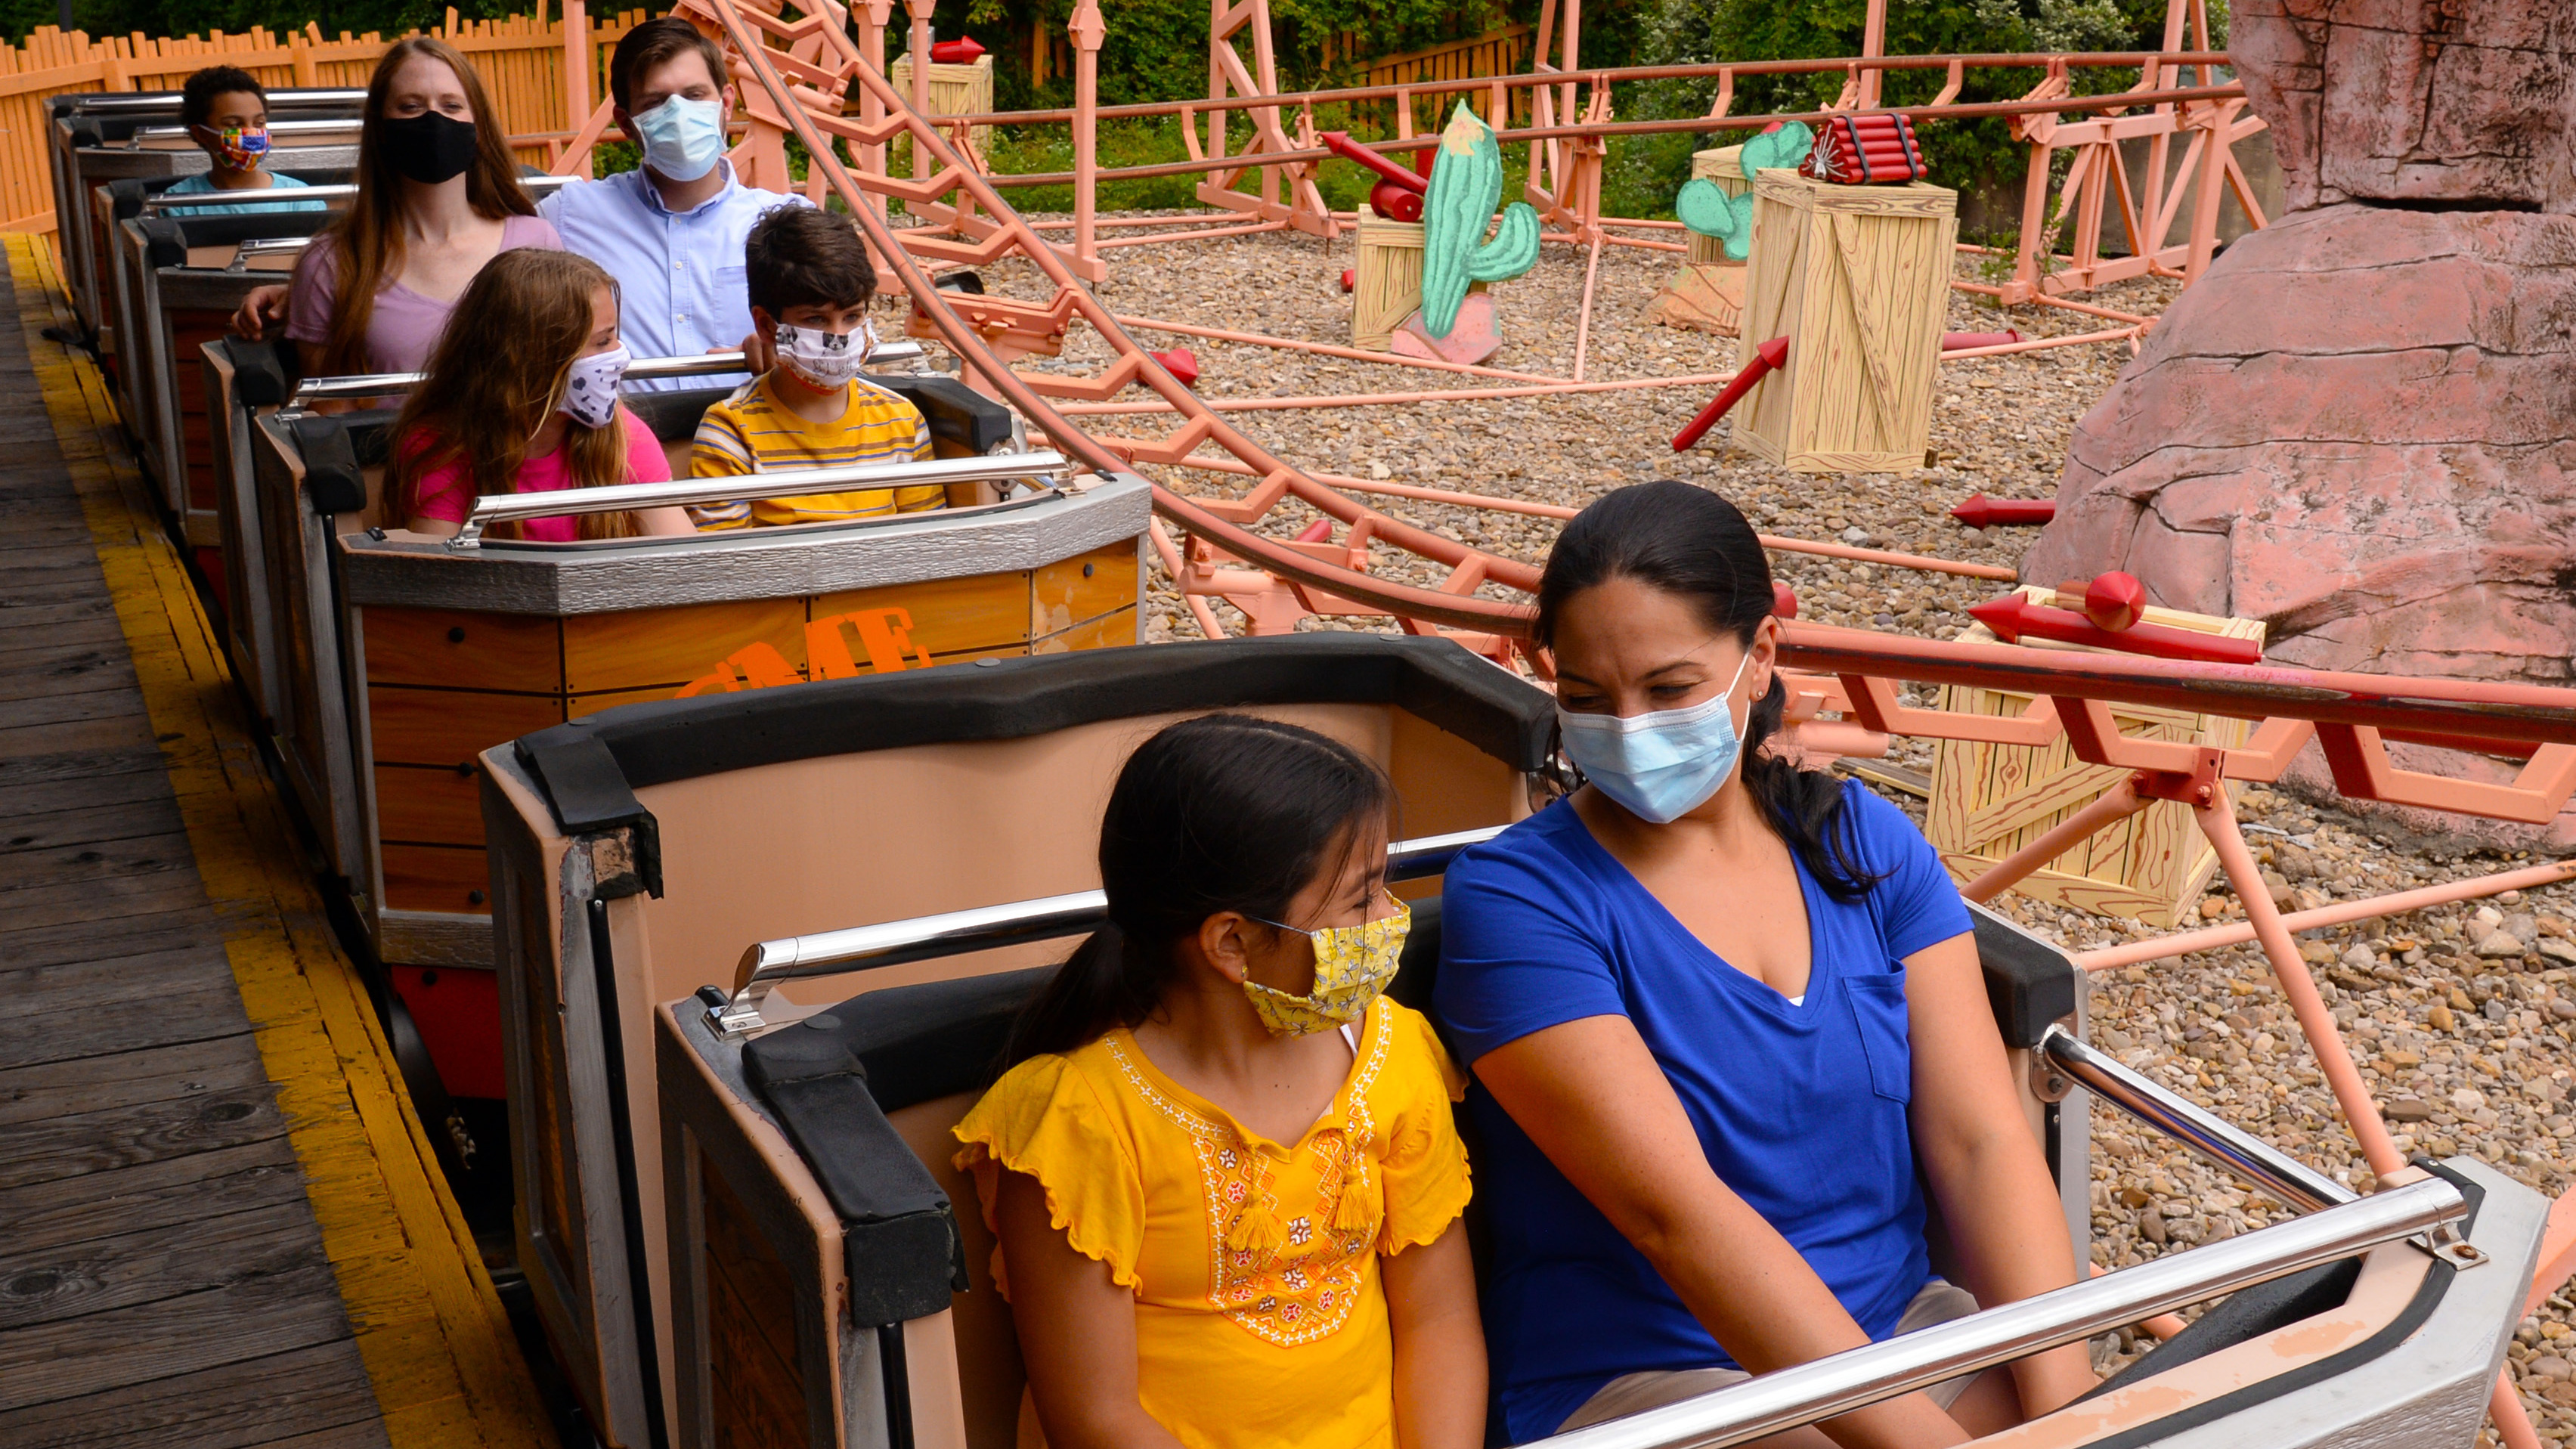 Six Flags Will Reopen Its First Park On June 5, Requiring Masks ...